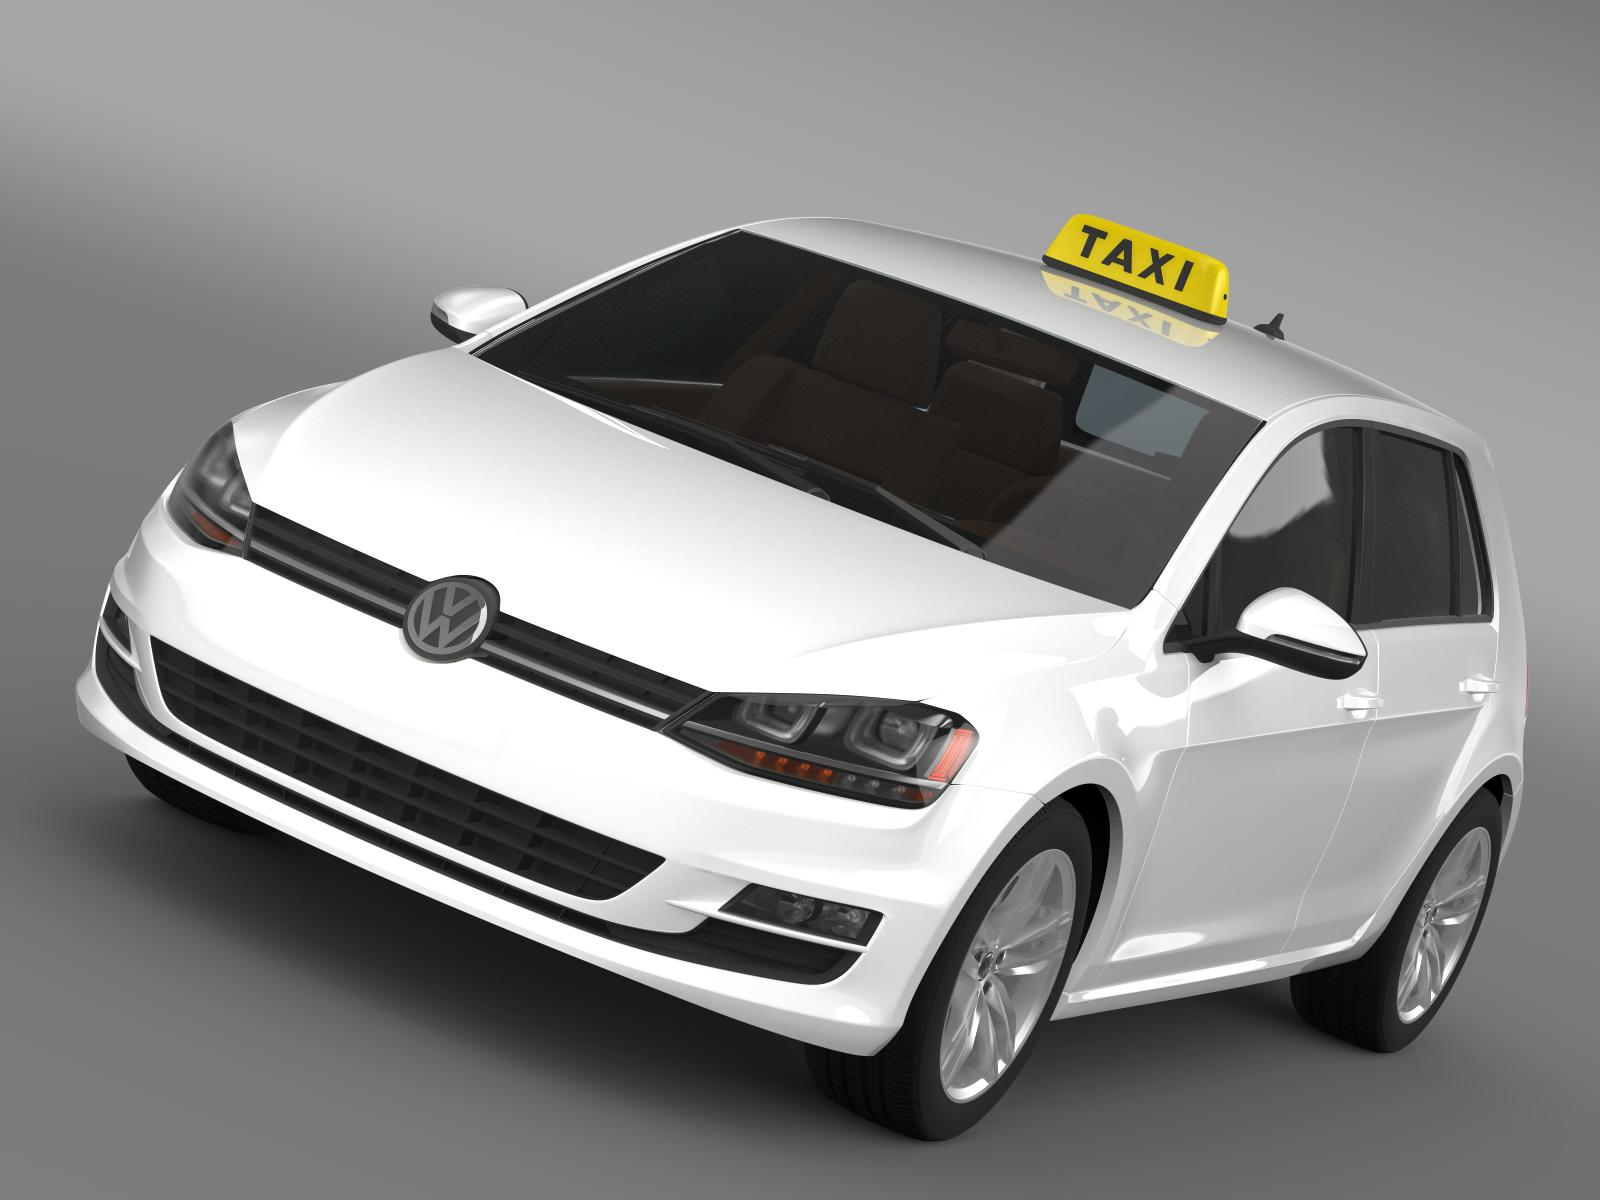 volkswagen golf tsi taxi 3d model buy volkswagen golf tsi taxi 3d model flatpyramid. Black Bedroom Furniture Sets. Home Design Ideas